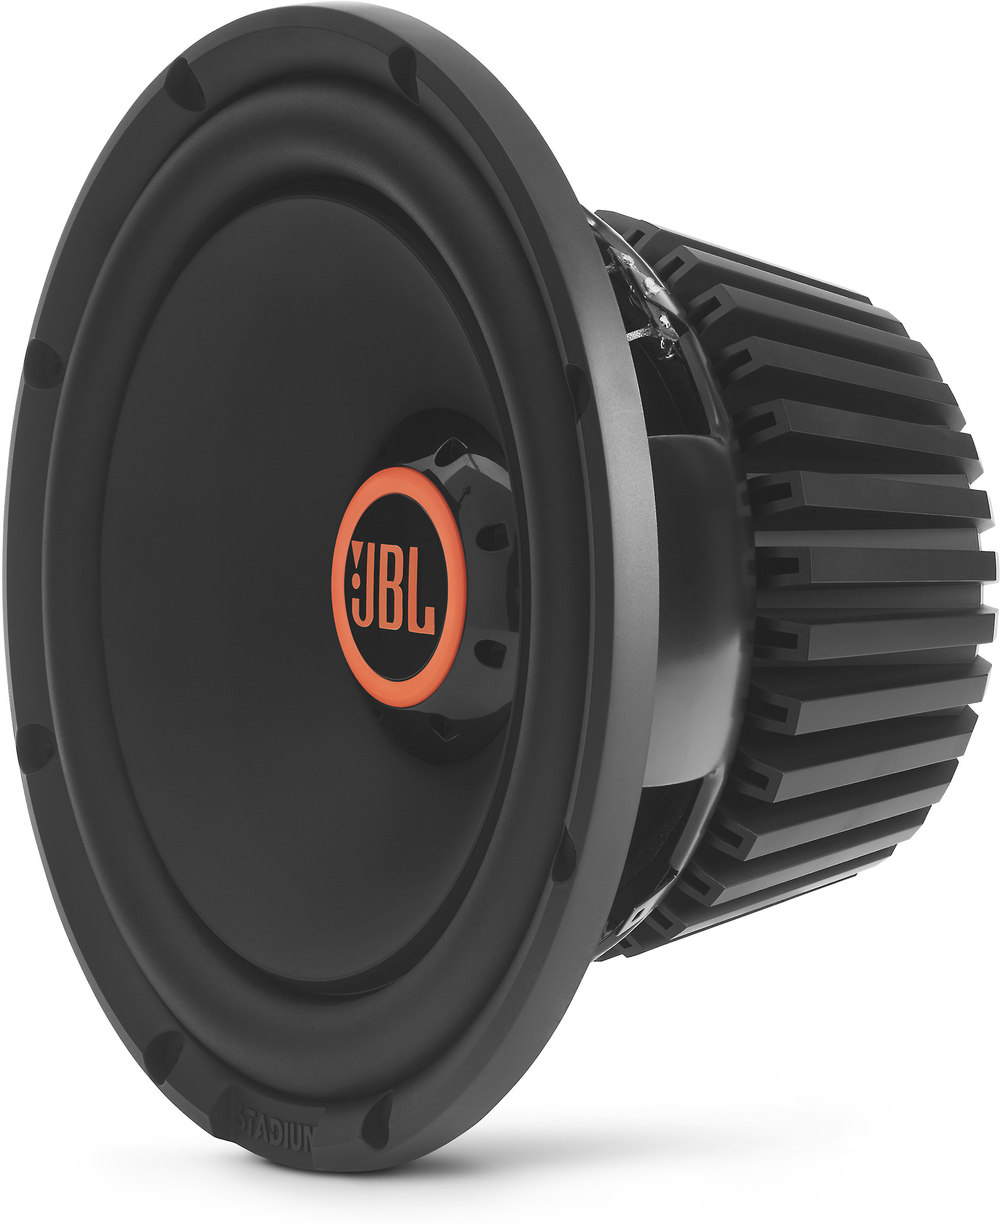 Jbl Stadium 1224 12 Component Subwoofer With Switchable 2 Or 4 Ohm Kenwood Kdc 122 Wiring Diagram 138 Impedance At